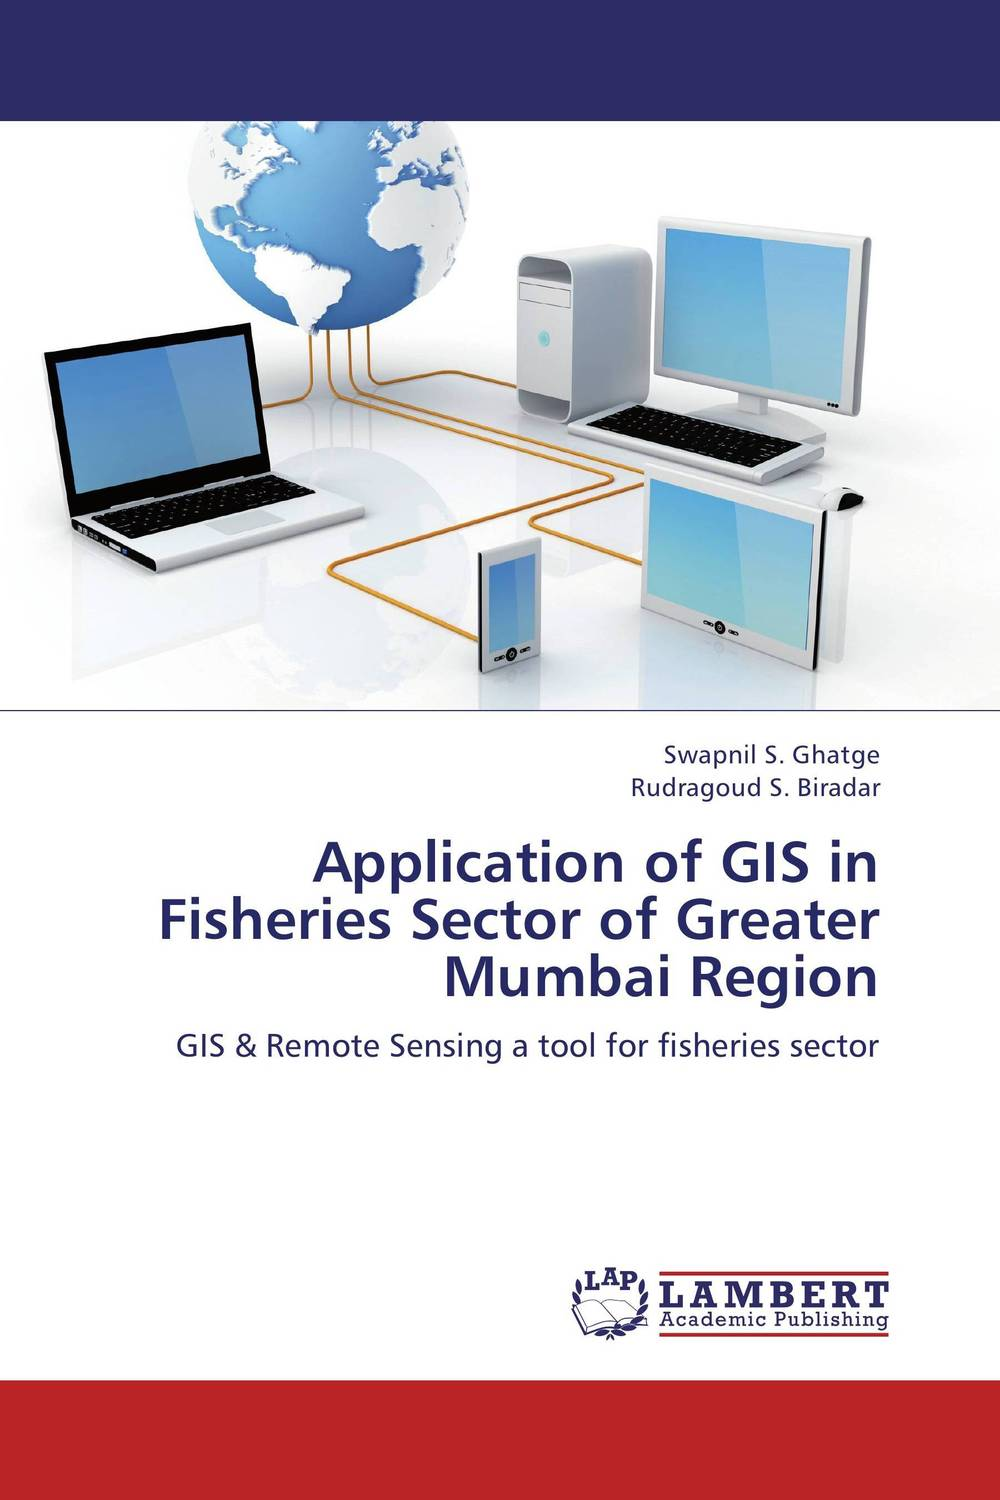 Application of GIS in Fisheries Sector of Greater Mumbai Region gis